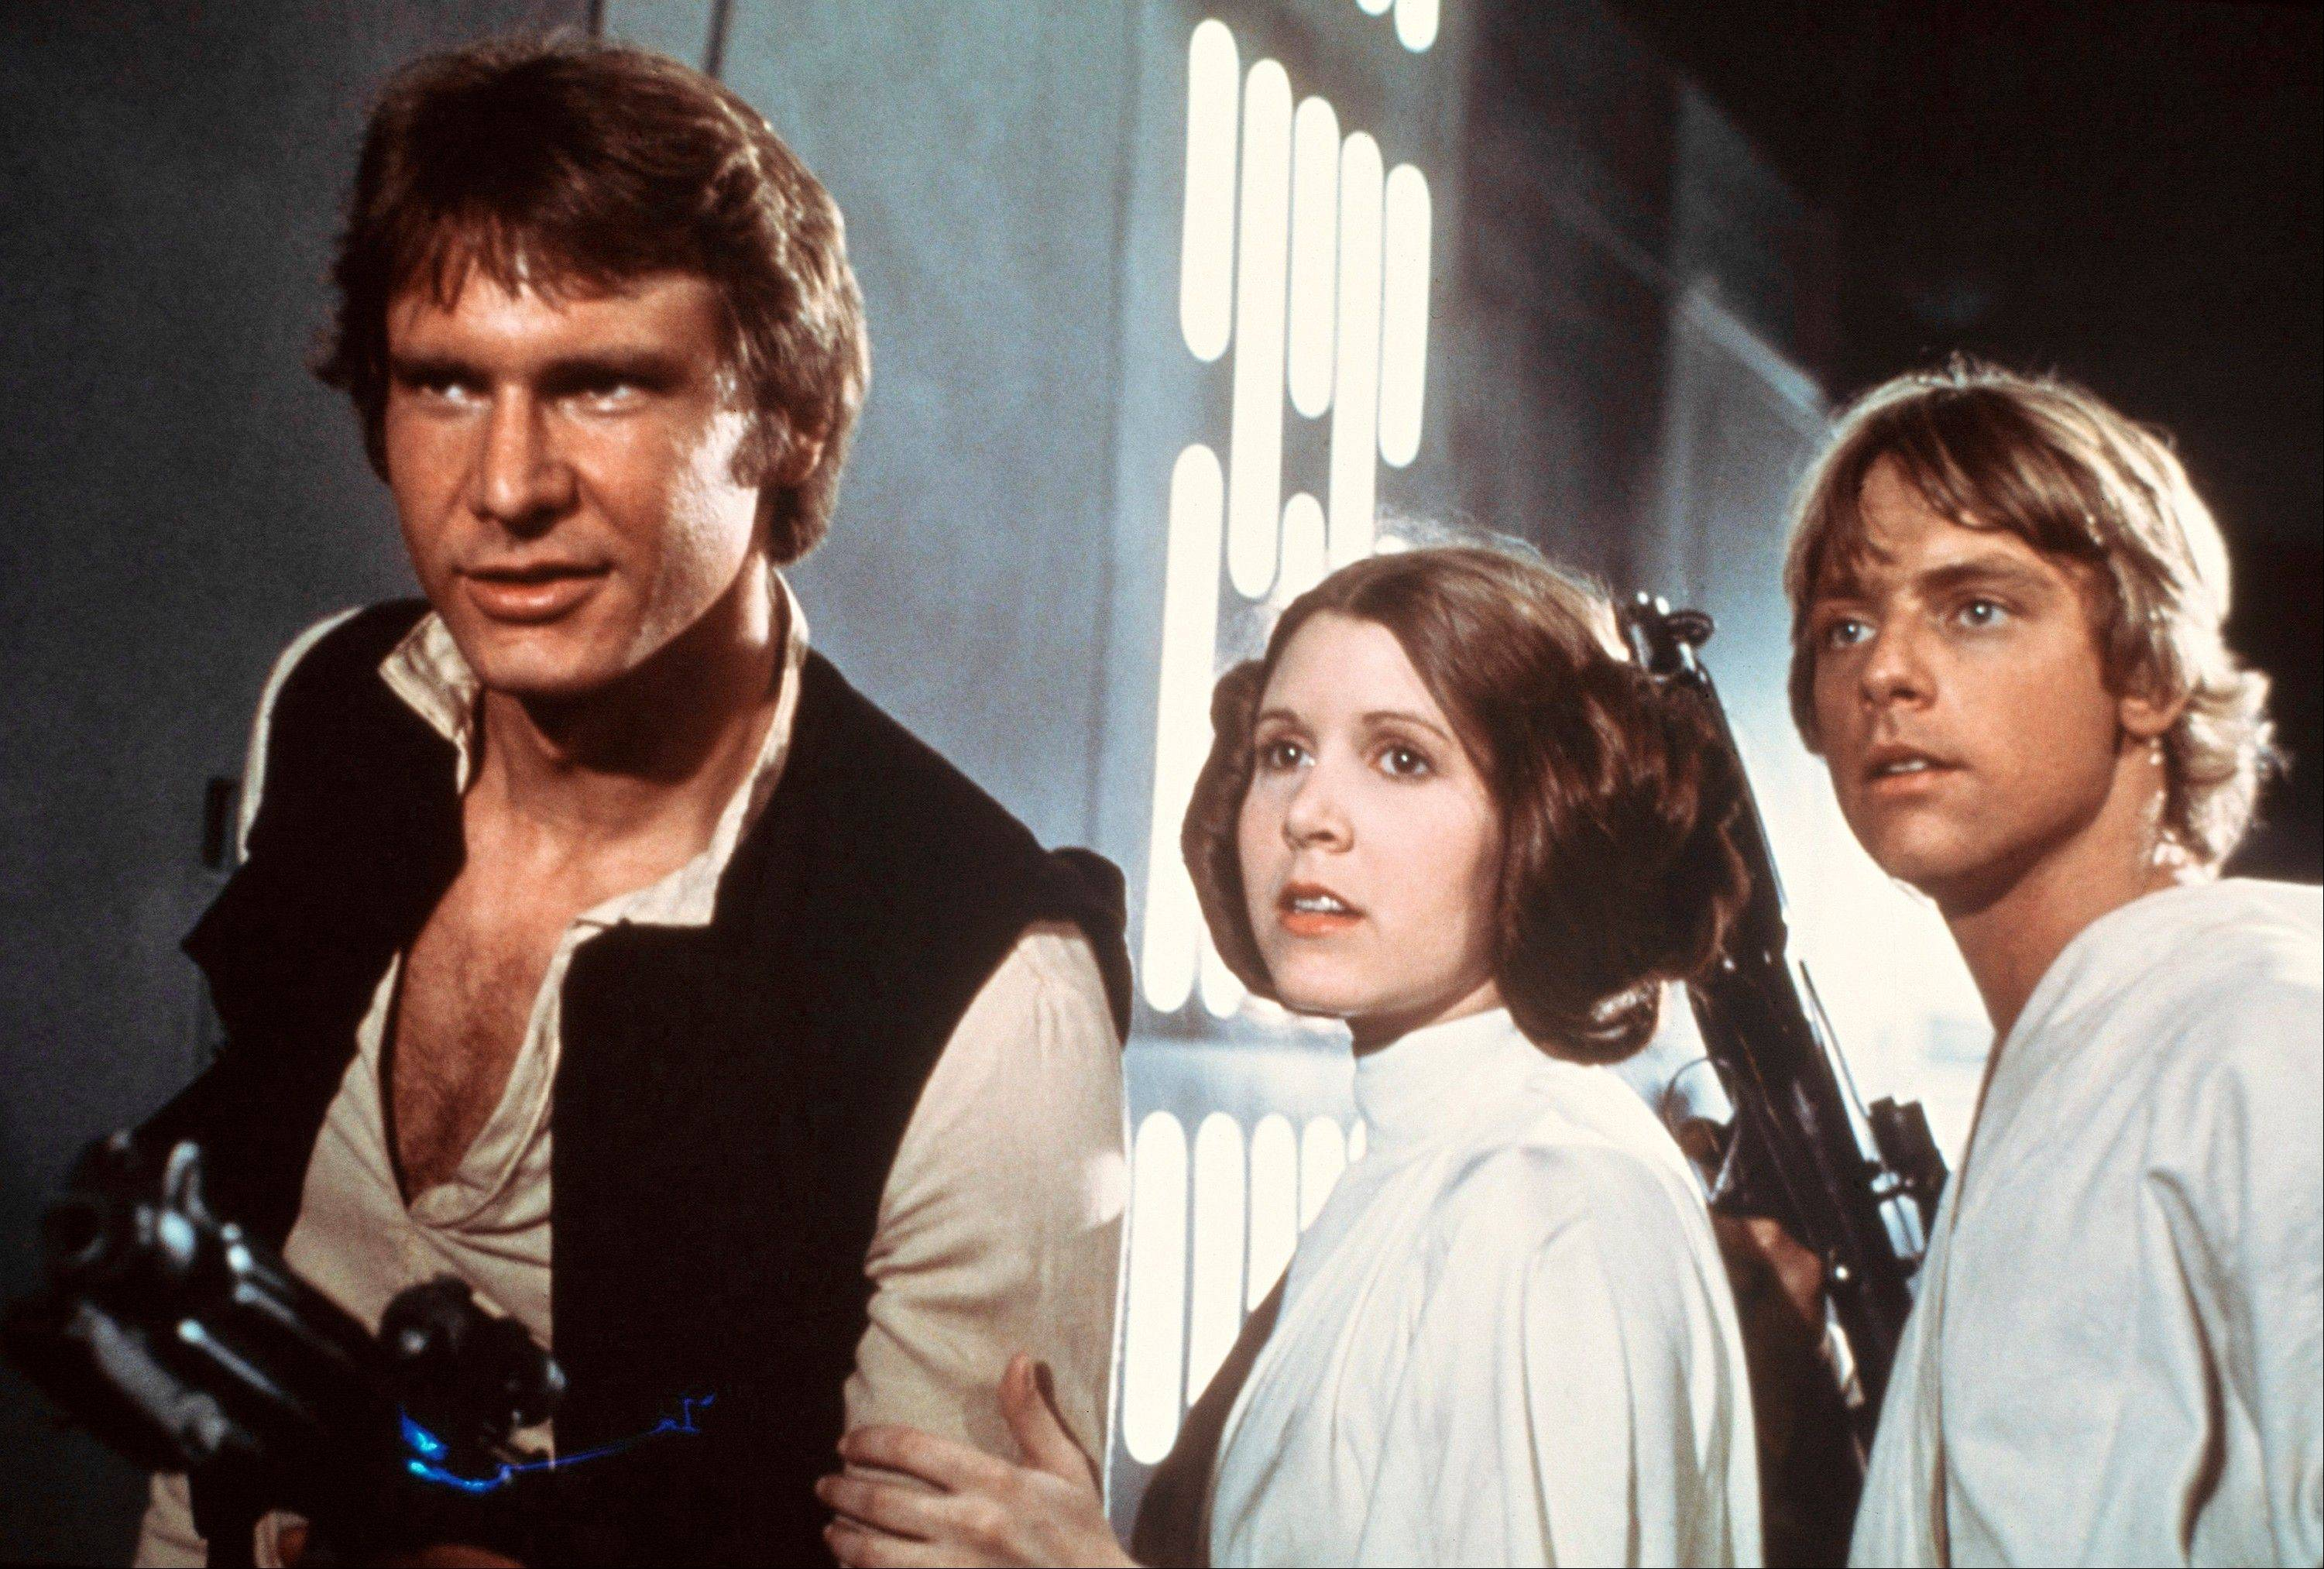 "Will Harrison Ford, Carrie Fisher and Mark Hamill reprise their roles in ""Star Wars: Episode VII""? If so, Luke and Co. will be back on the big screen Dec. 18, 2015."